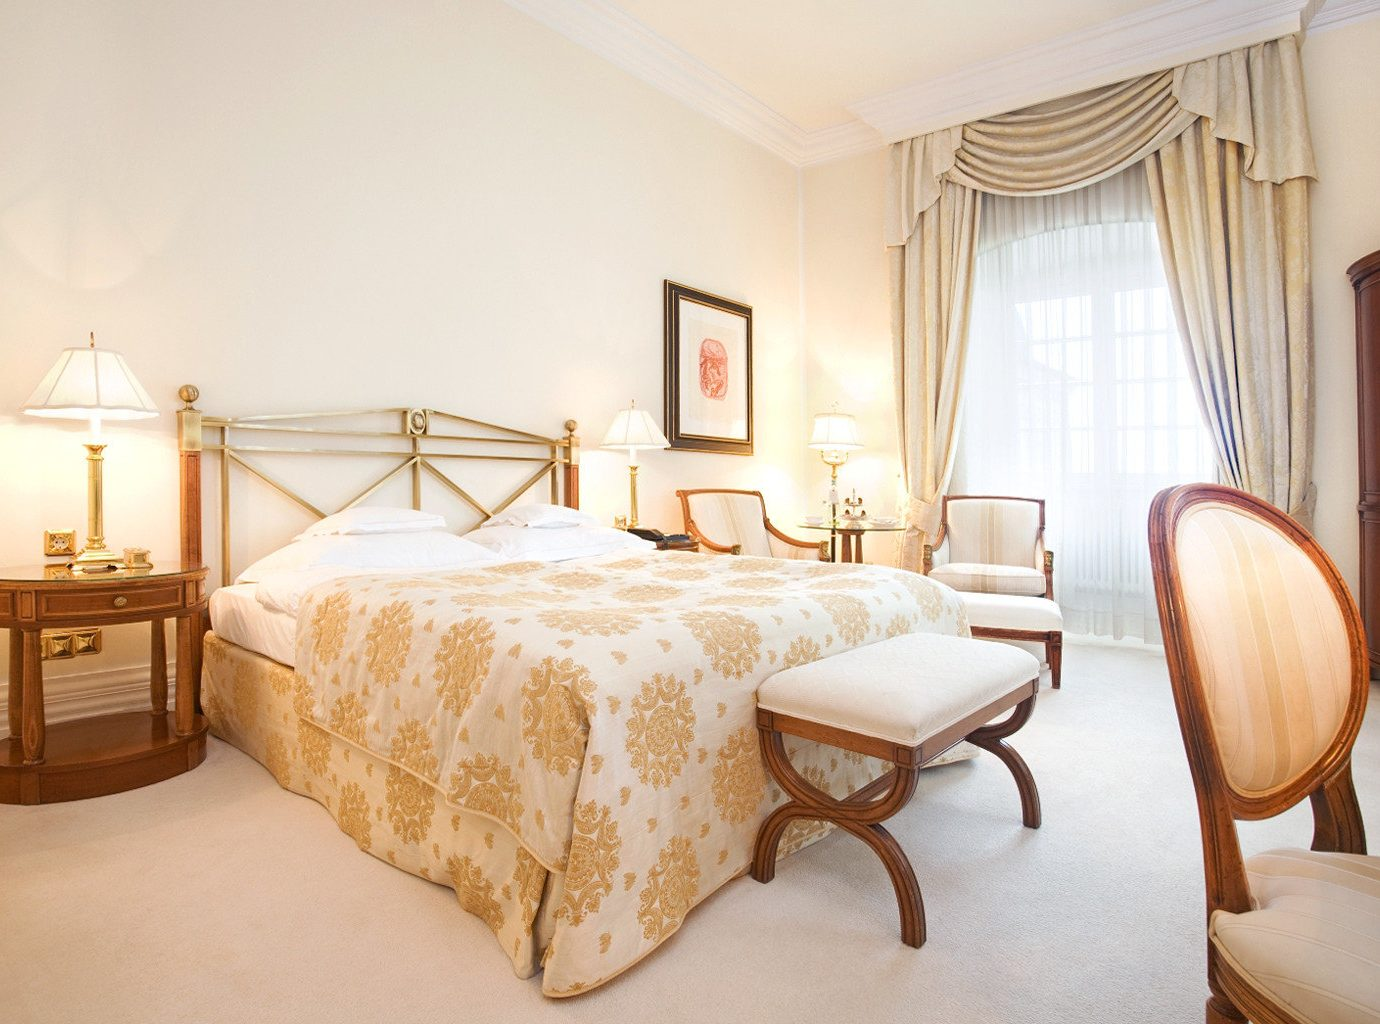 Bedroom Classic Country Historic Hotels Landmarks Luxury Luxury Travel indoor wall floor room bed property Suite hotel estate cottage interior design real estate apartment furniture